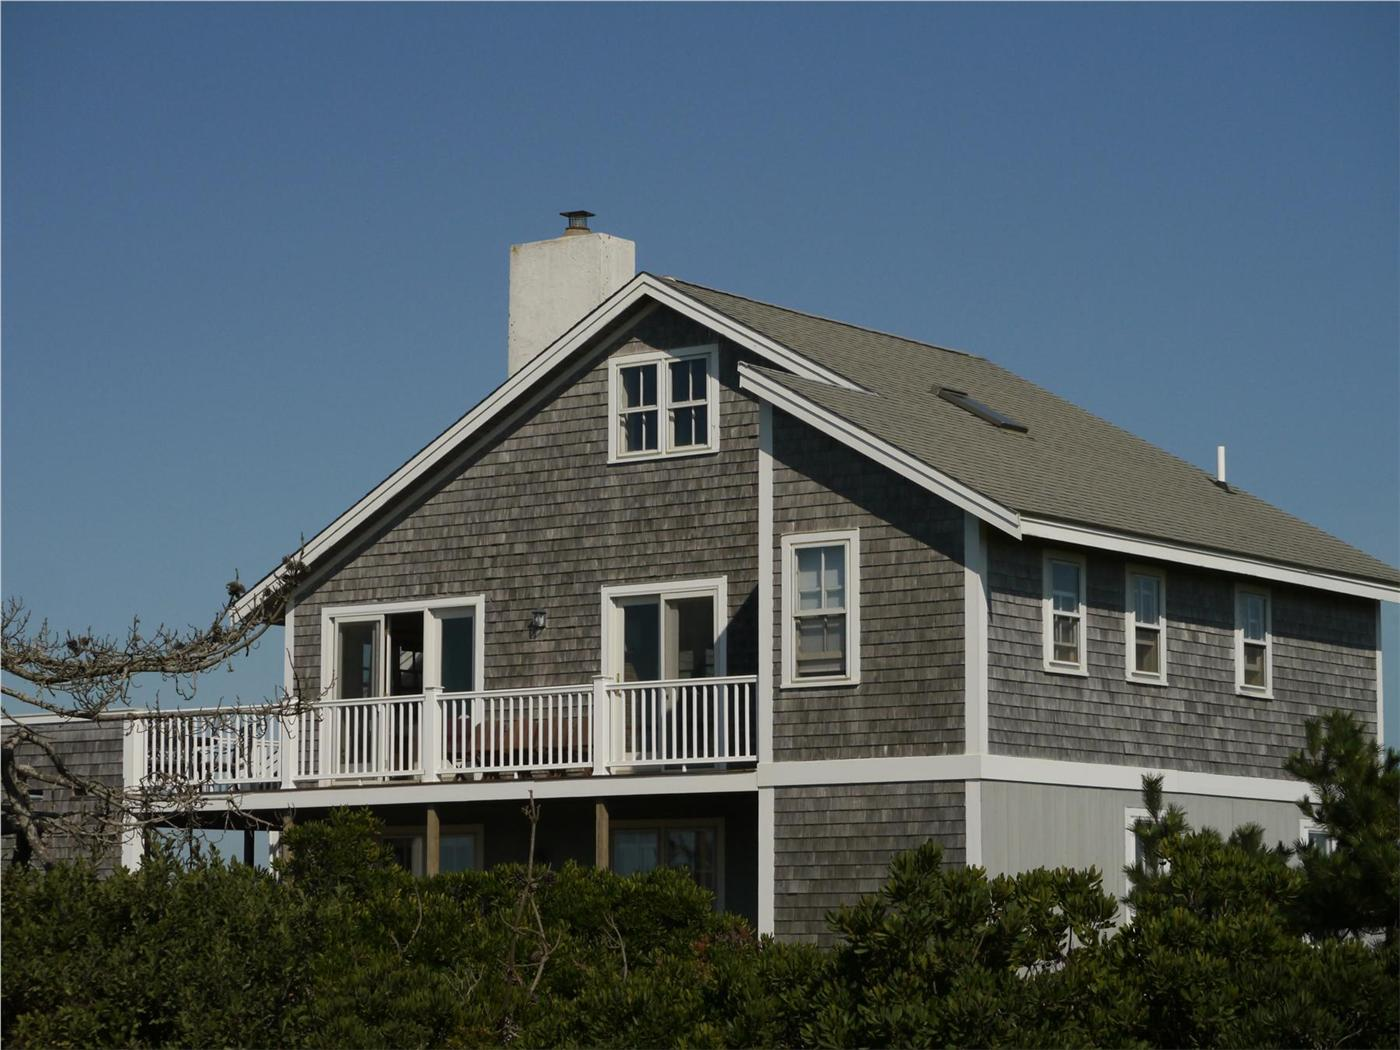 Surfside Vacation Al Home In Nantucket Ma 02554 150 Yards From Adeer Beach Access Id 18054